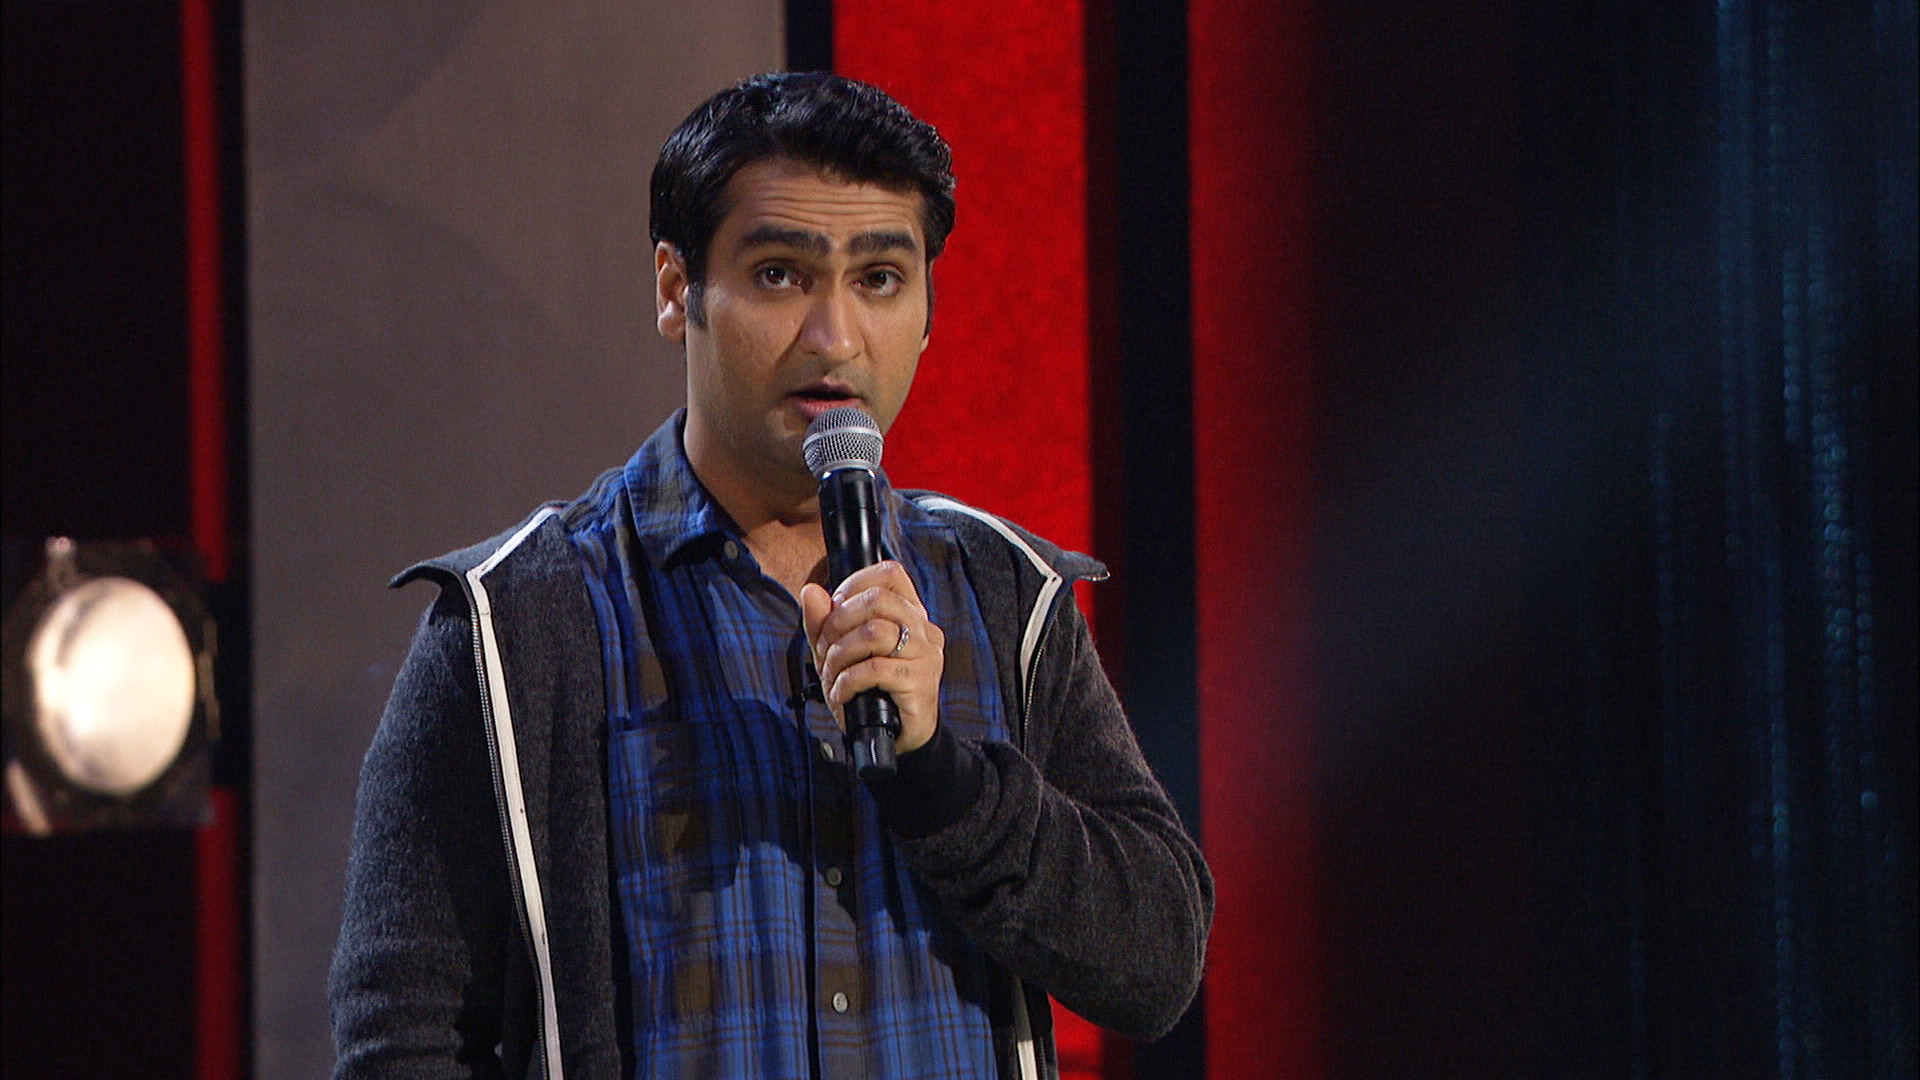 Uncensored - Kumail Nanjiani - Porn Stuck in the VCR Pt. 1